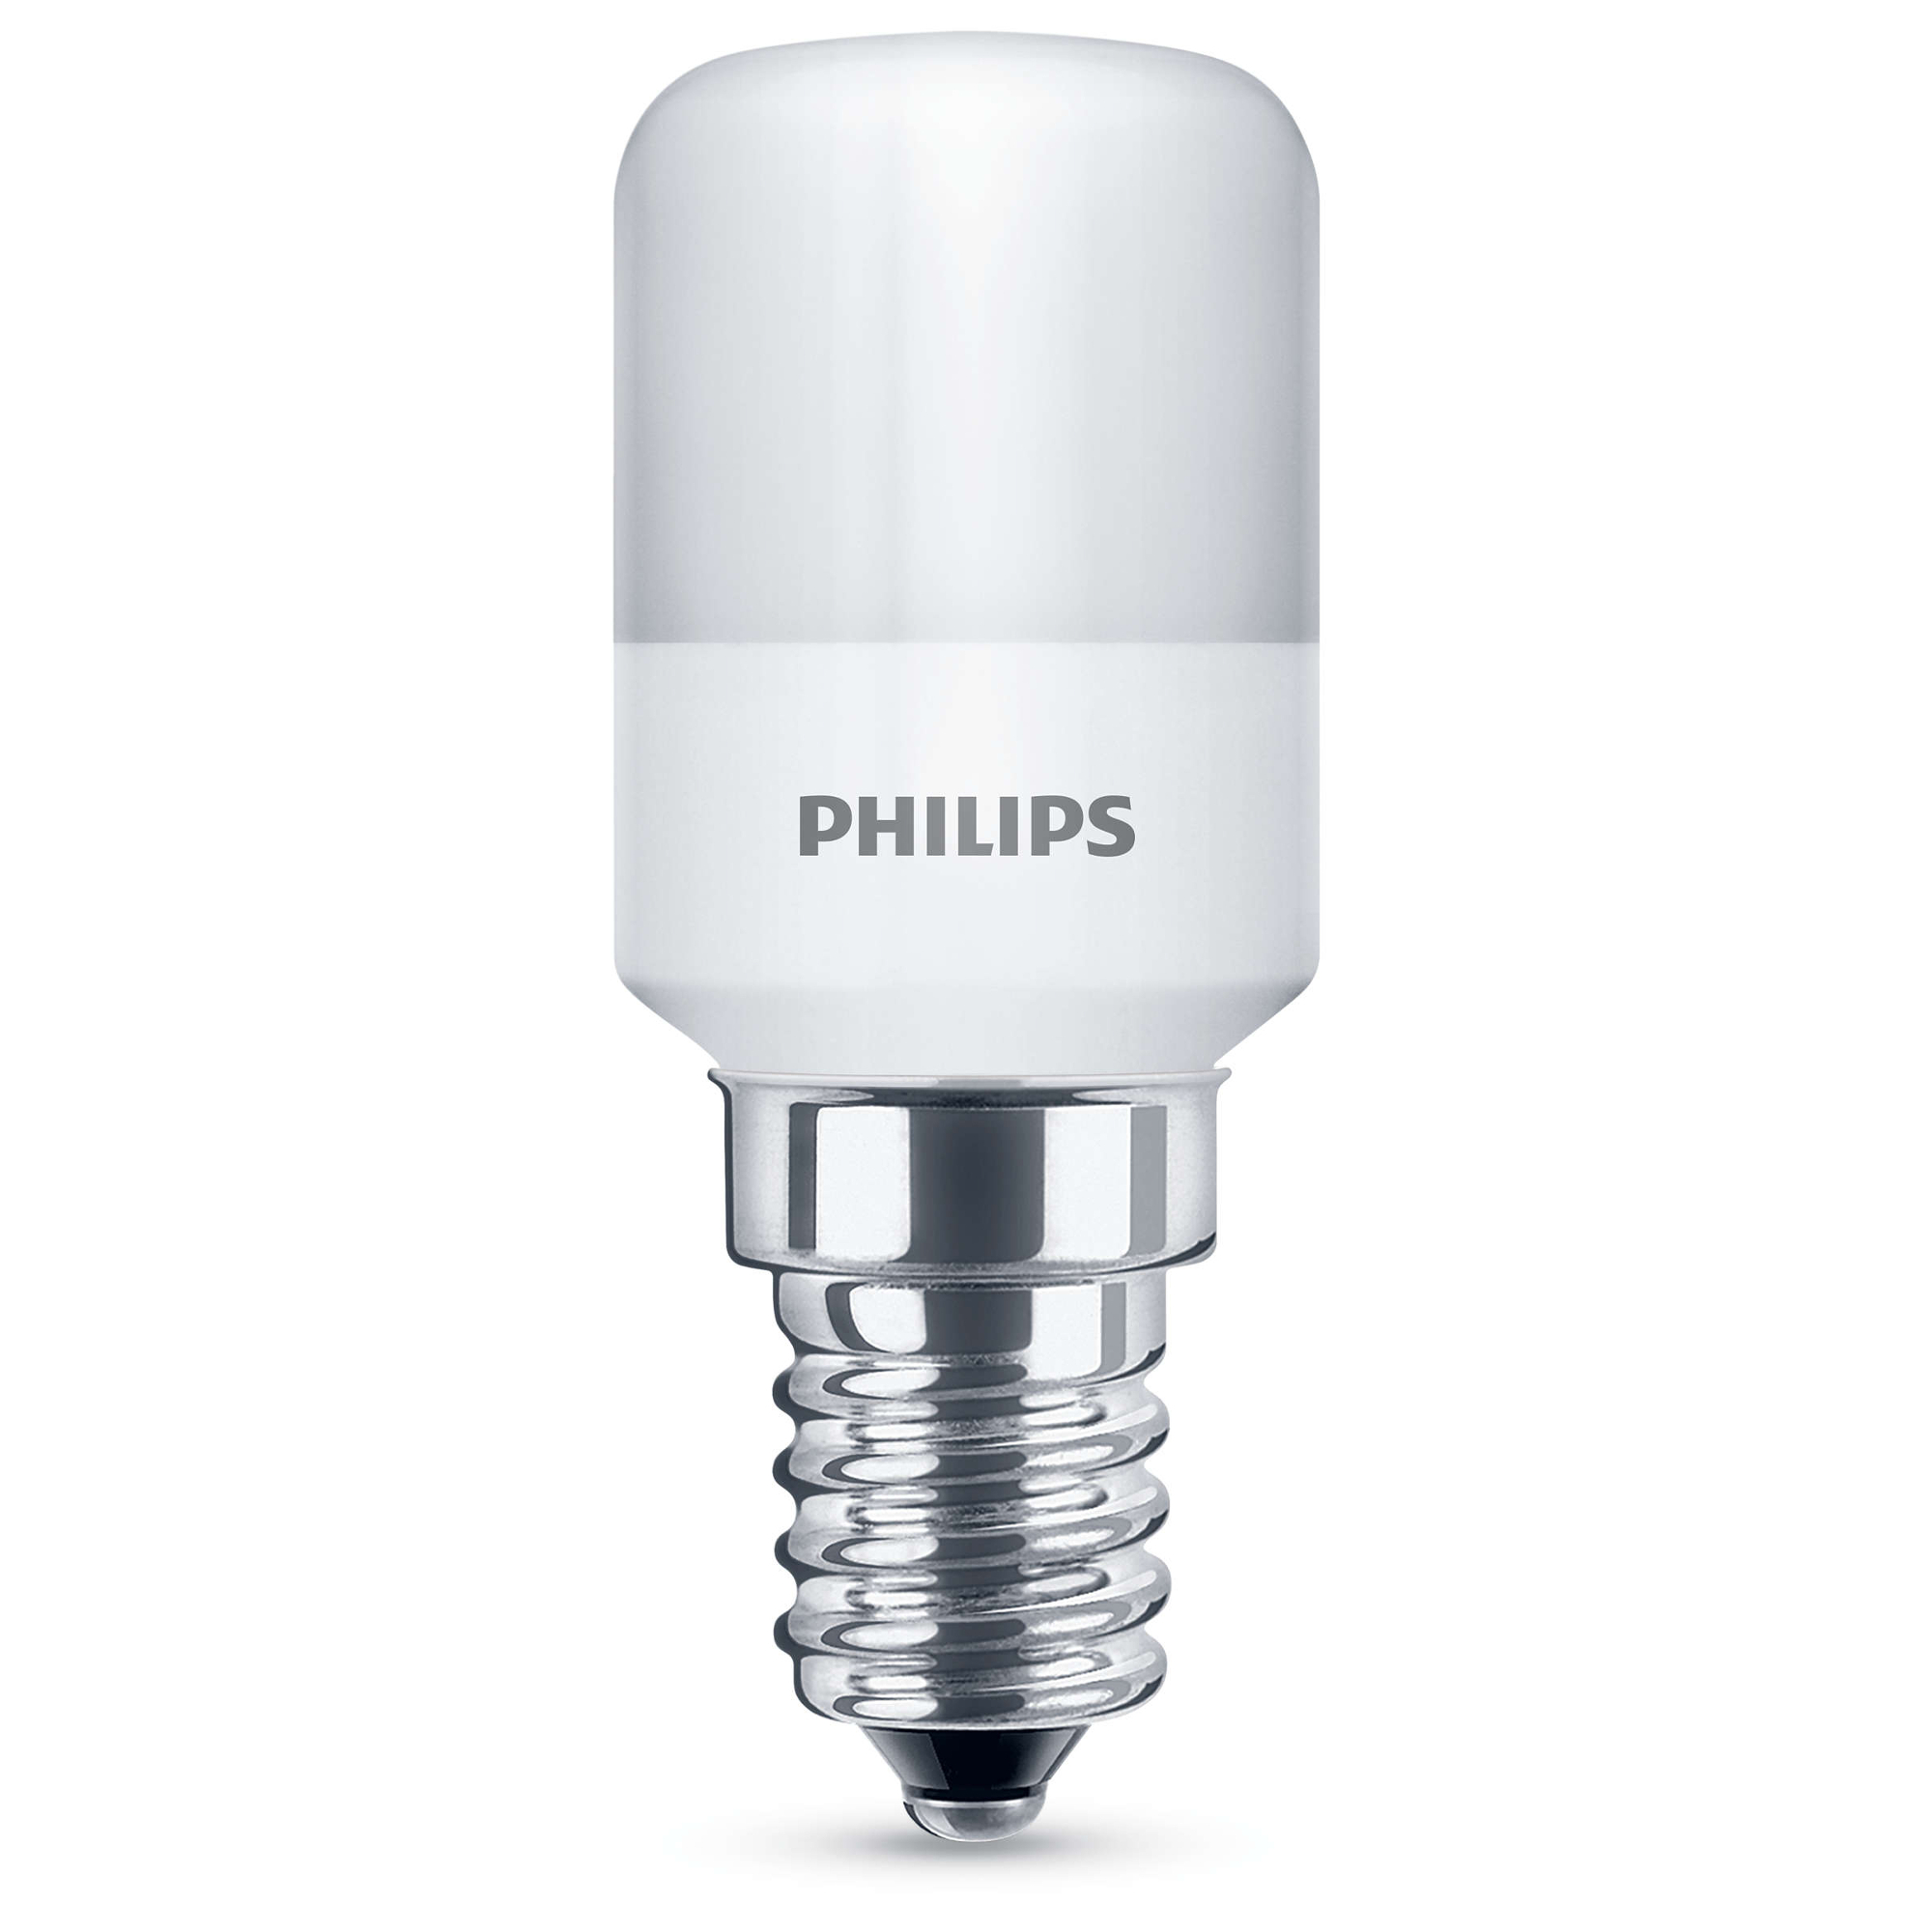 Bulb Philips Philips Led T25 Frosted E14 Edison Screw 15w Appliance